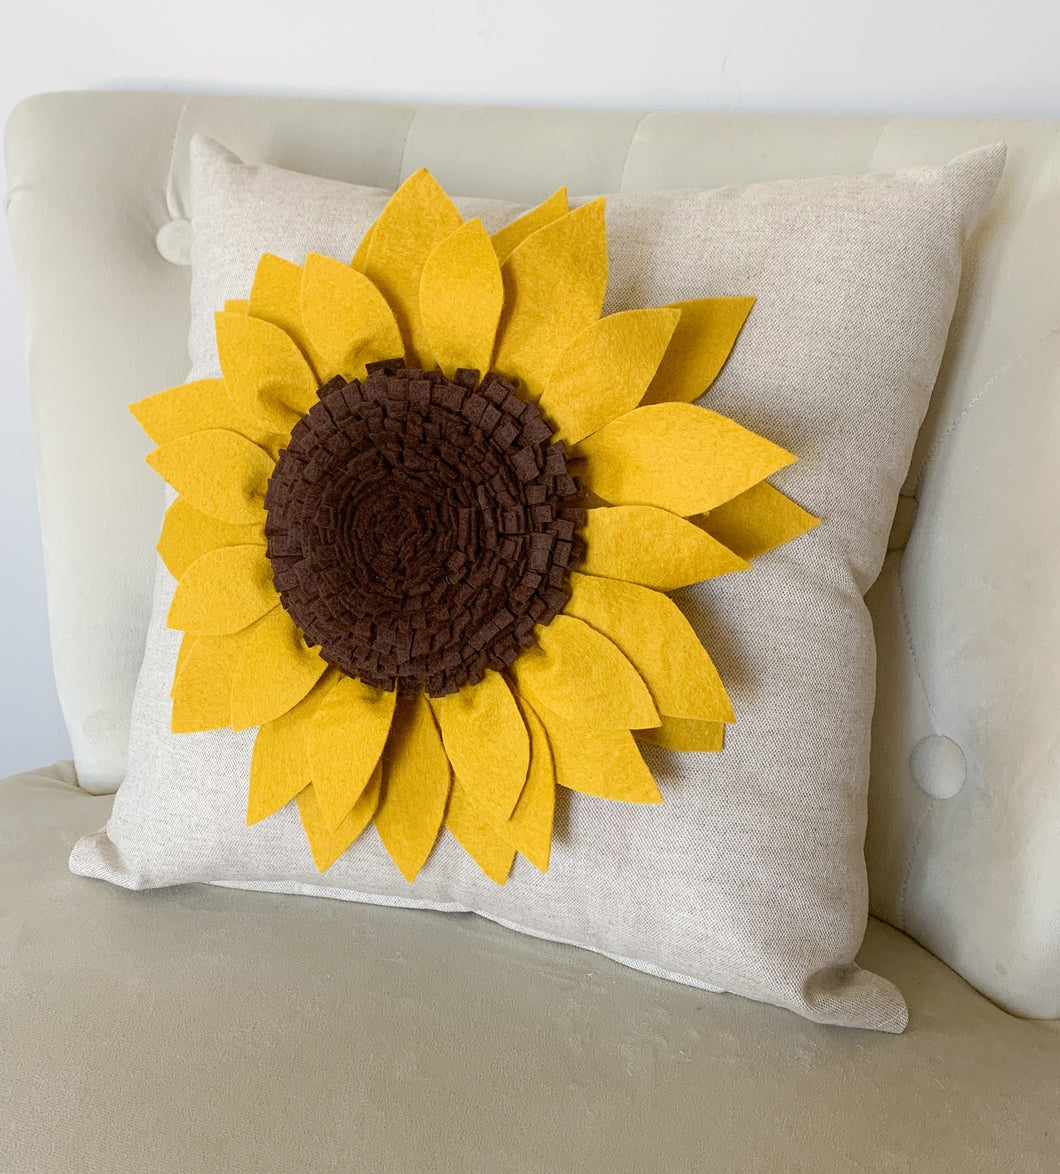 Decorative Pillow with Mustard yellow Sunflower made from wool felt on oatmeal colored pillow